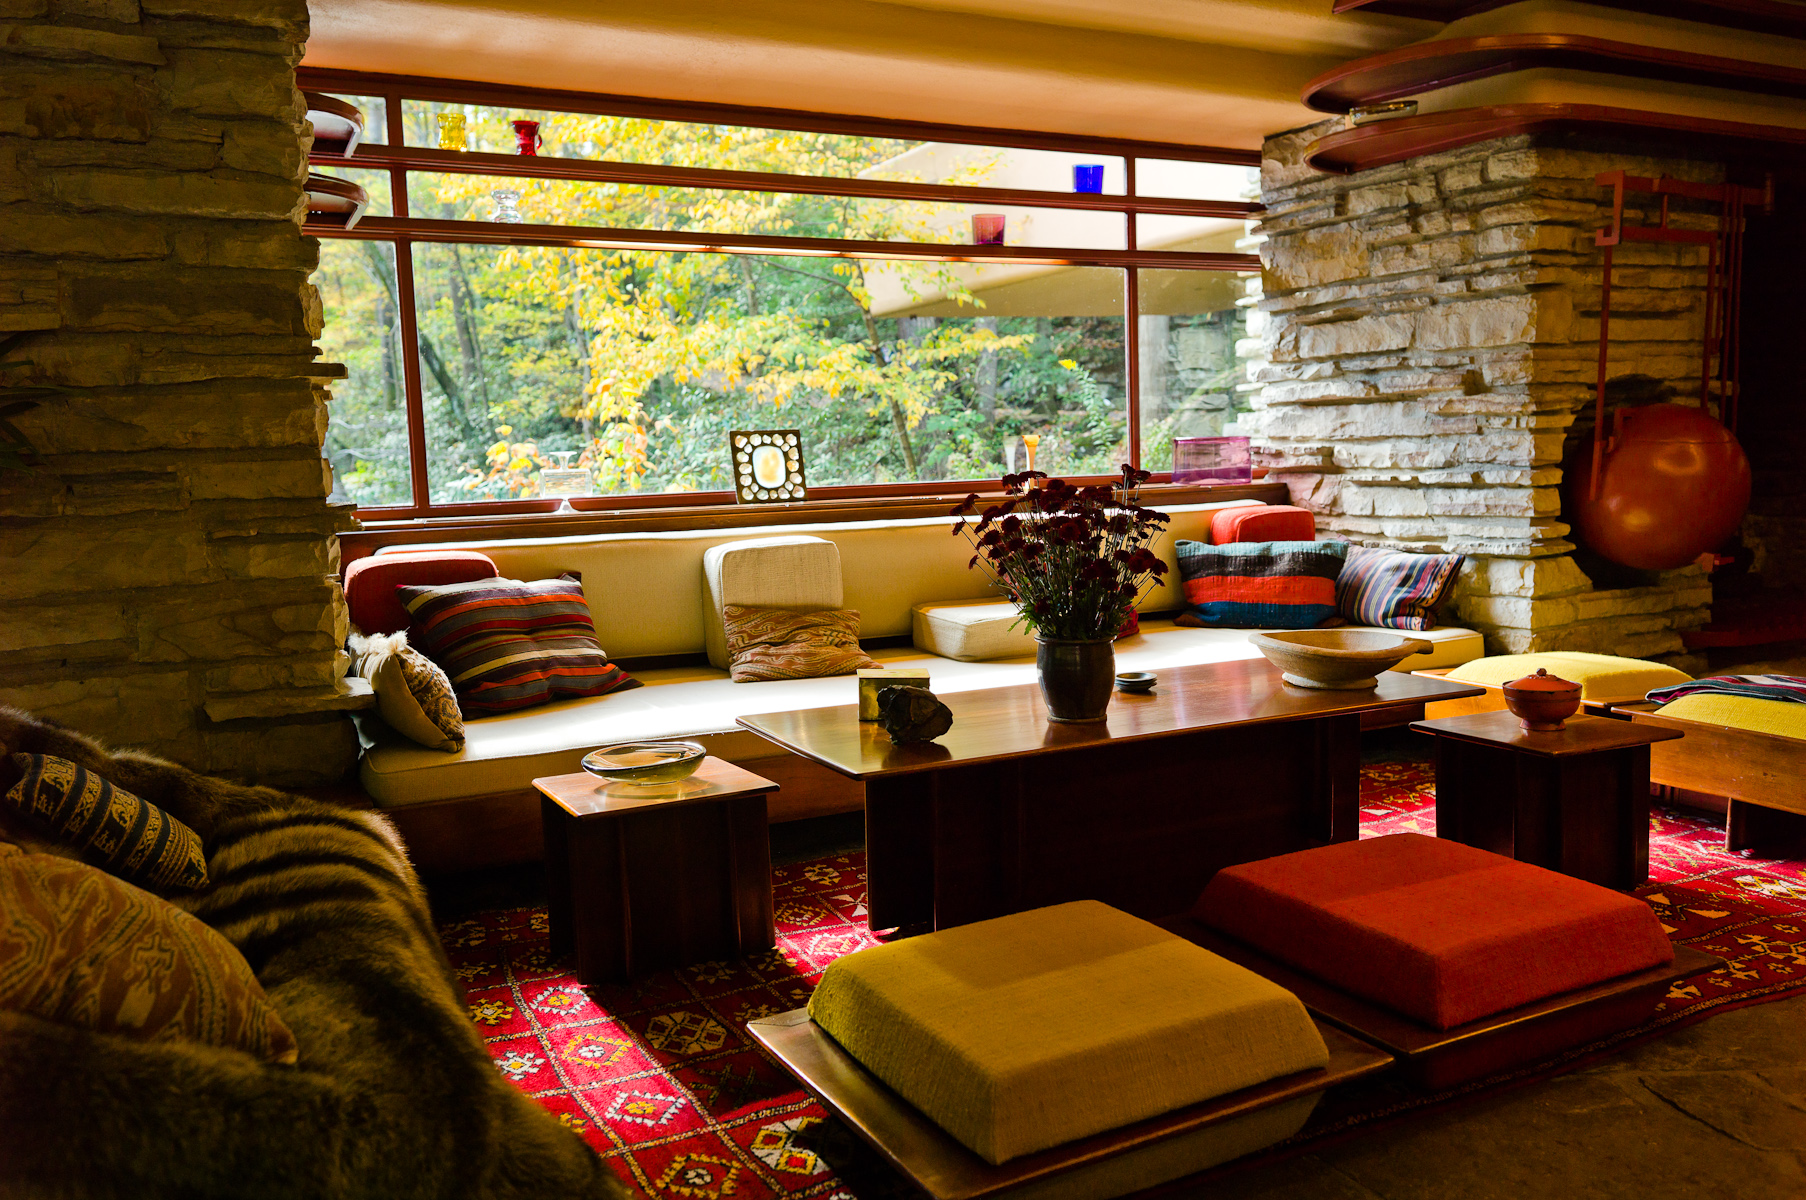 Shooting the Leica S2 in Frank Lloyd Wright39s Fallingwater